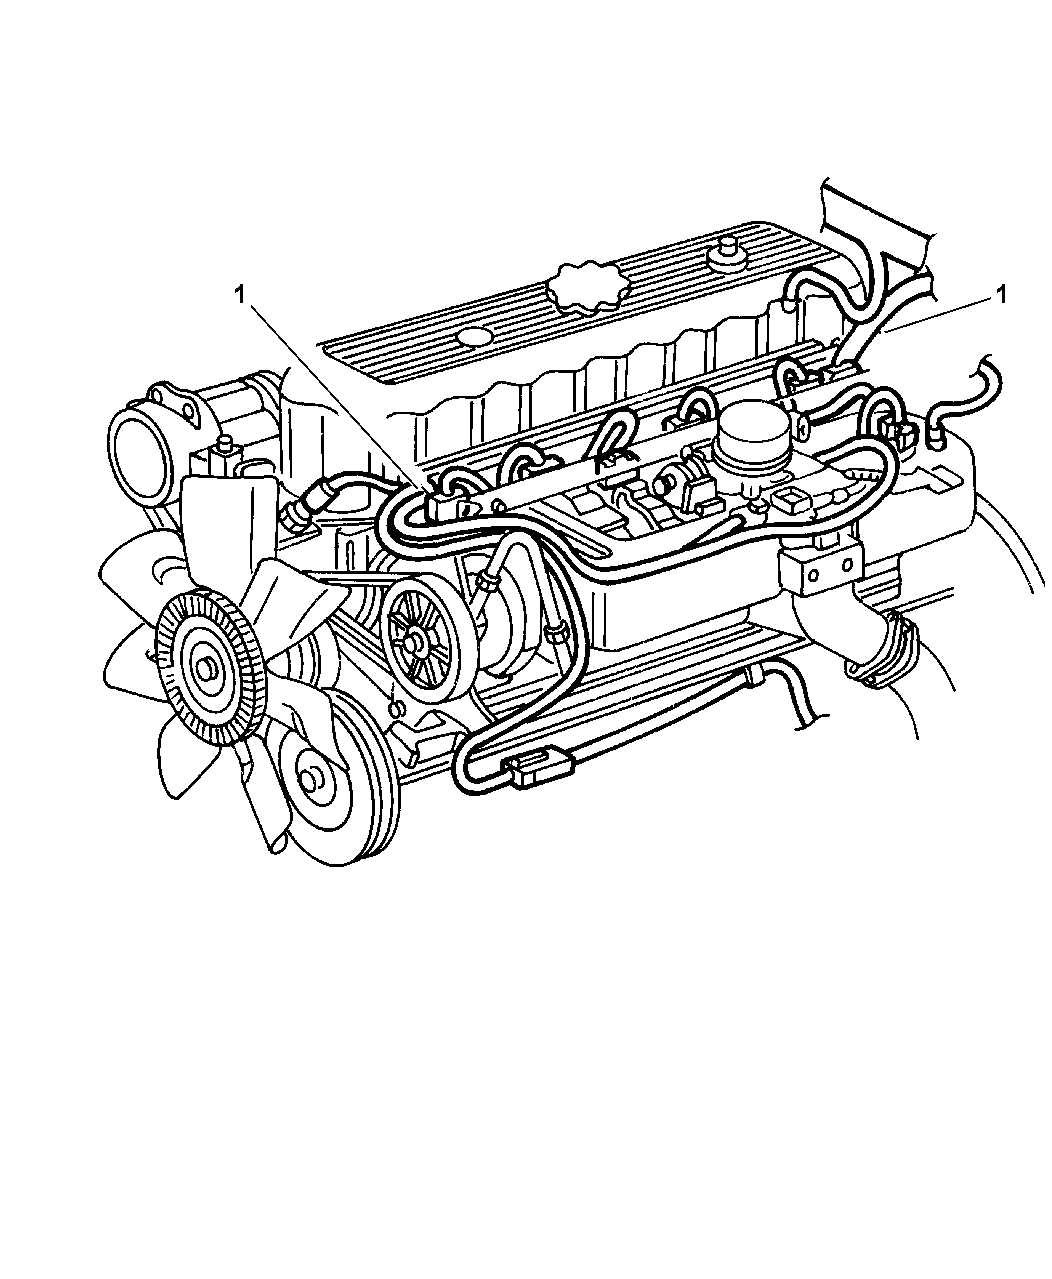 1997 jeep grand cherokee wiring - engine